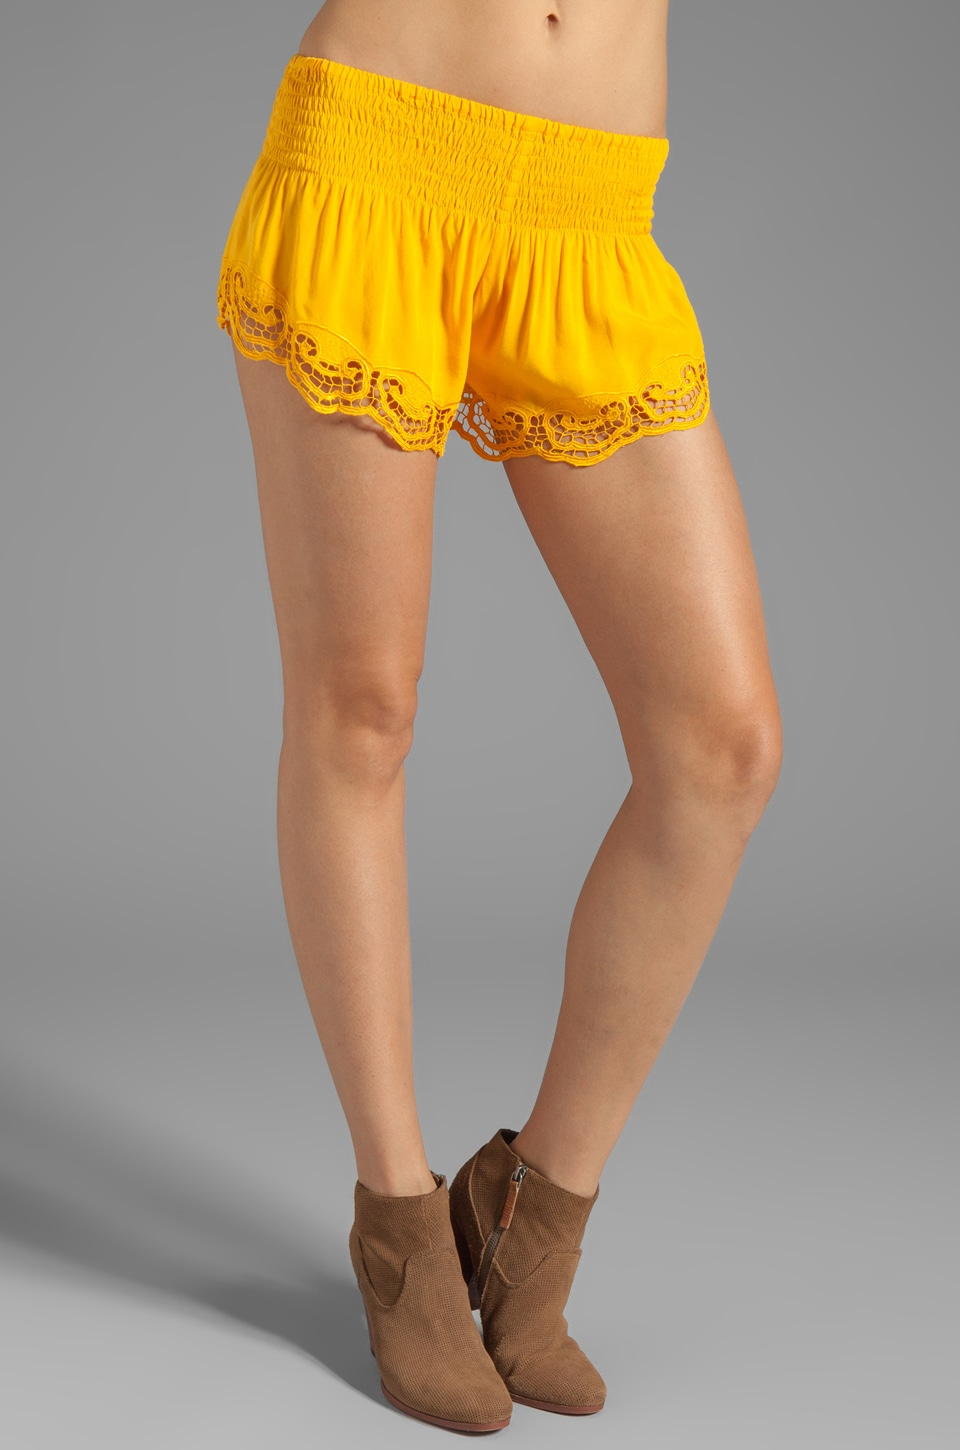 Jen's Pirate Booty Simplicity Shorties in Yellow